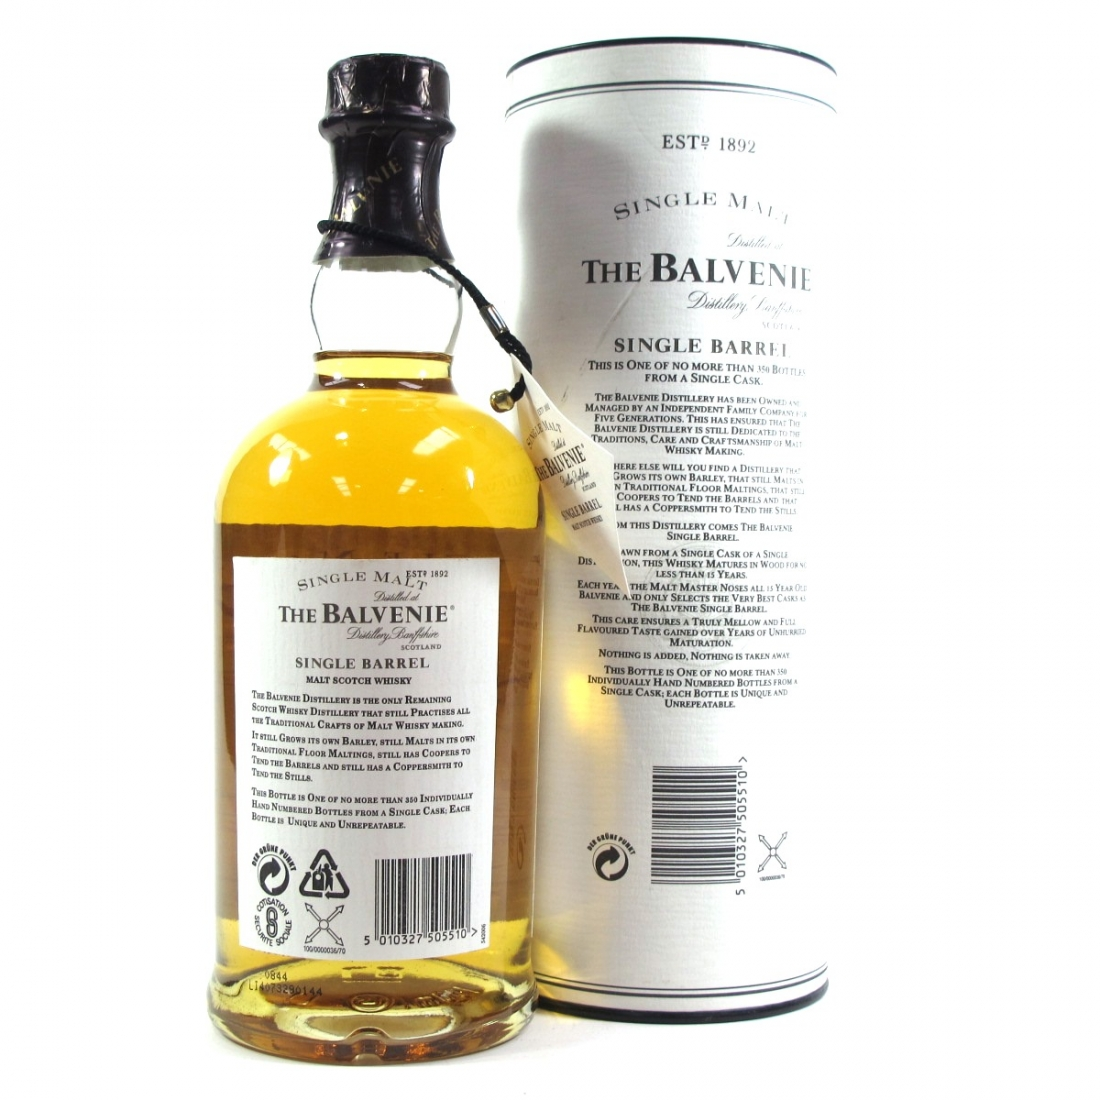 Balvenie single barrel